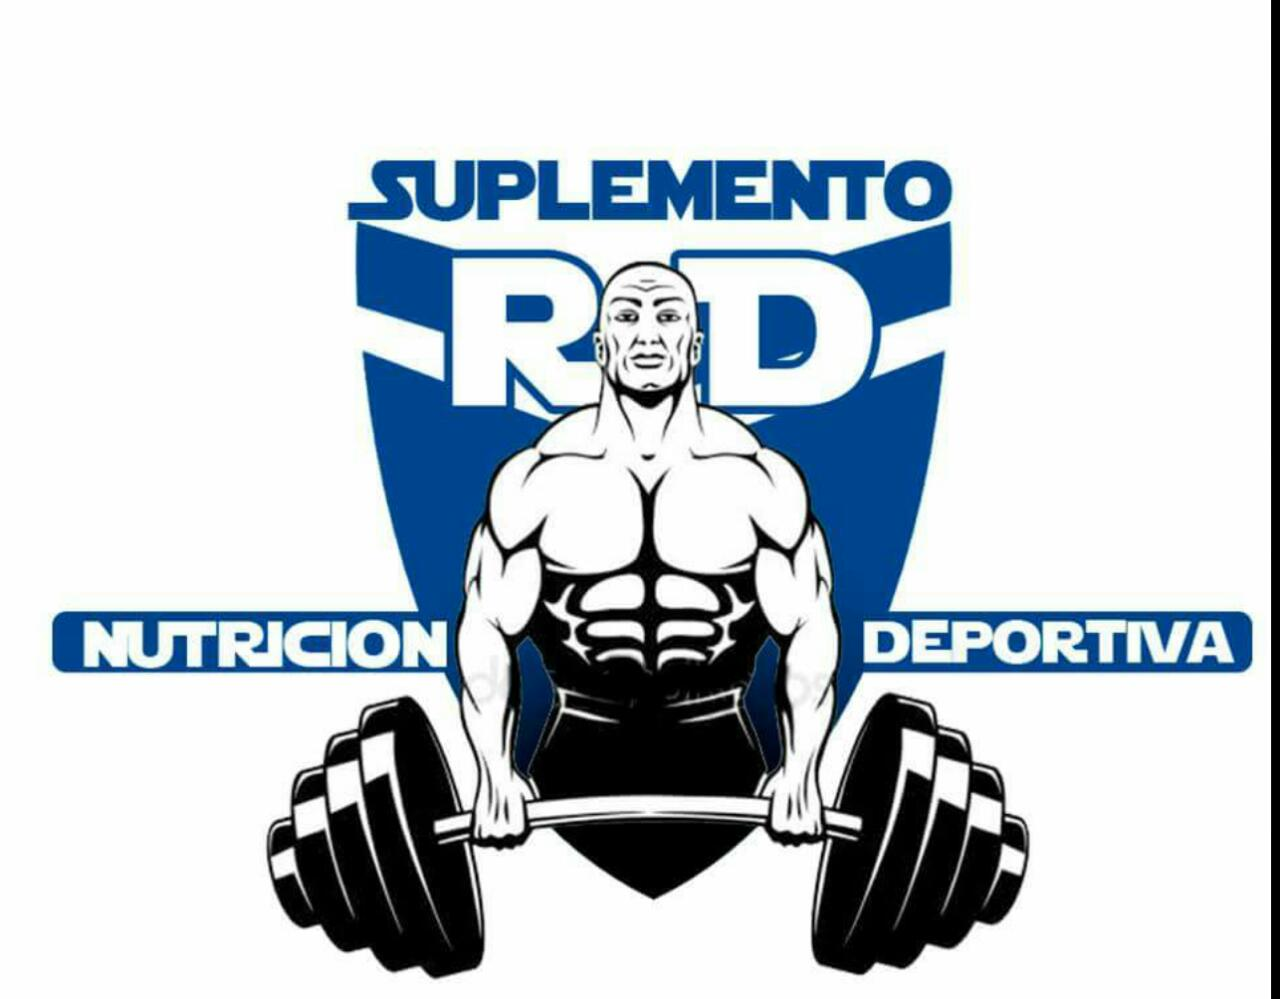 SUPPLEMENT HOUSE RD